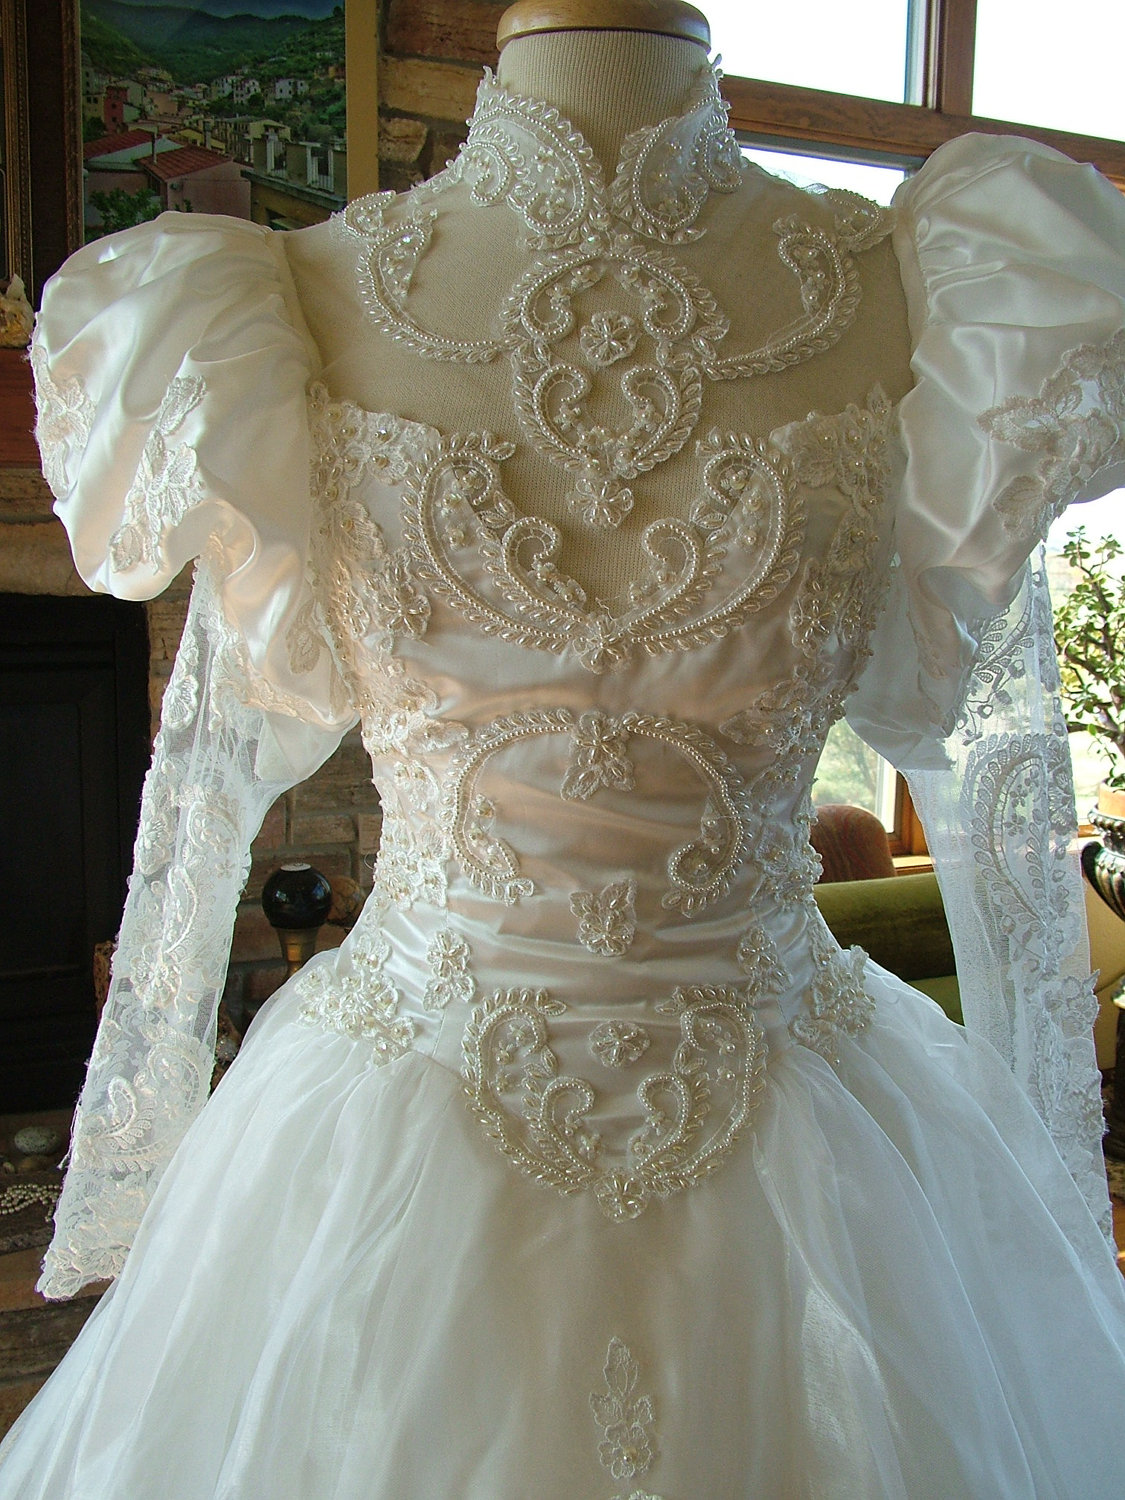 1980s Wedding Dress - TLC Events and Weddings, LLC